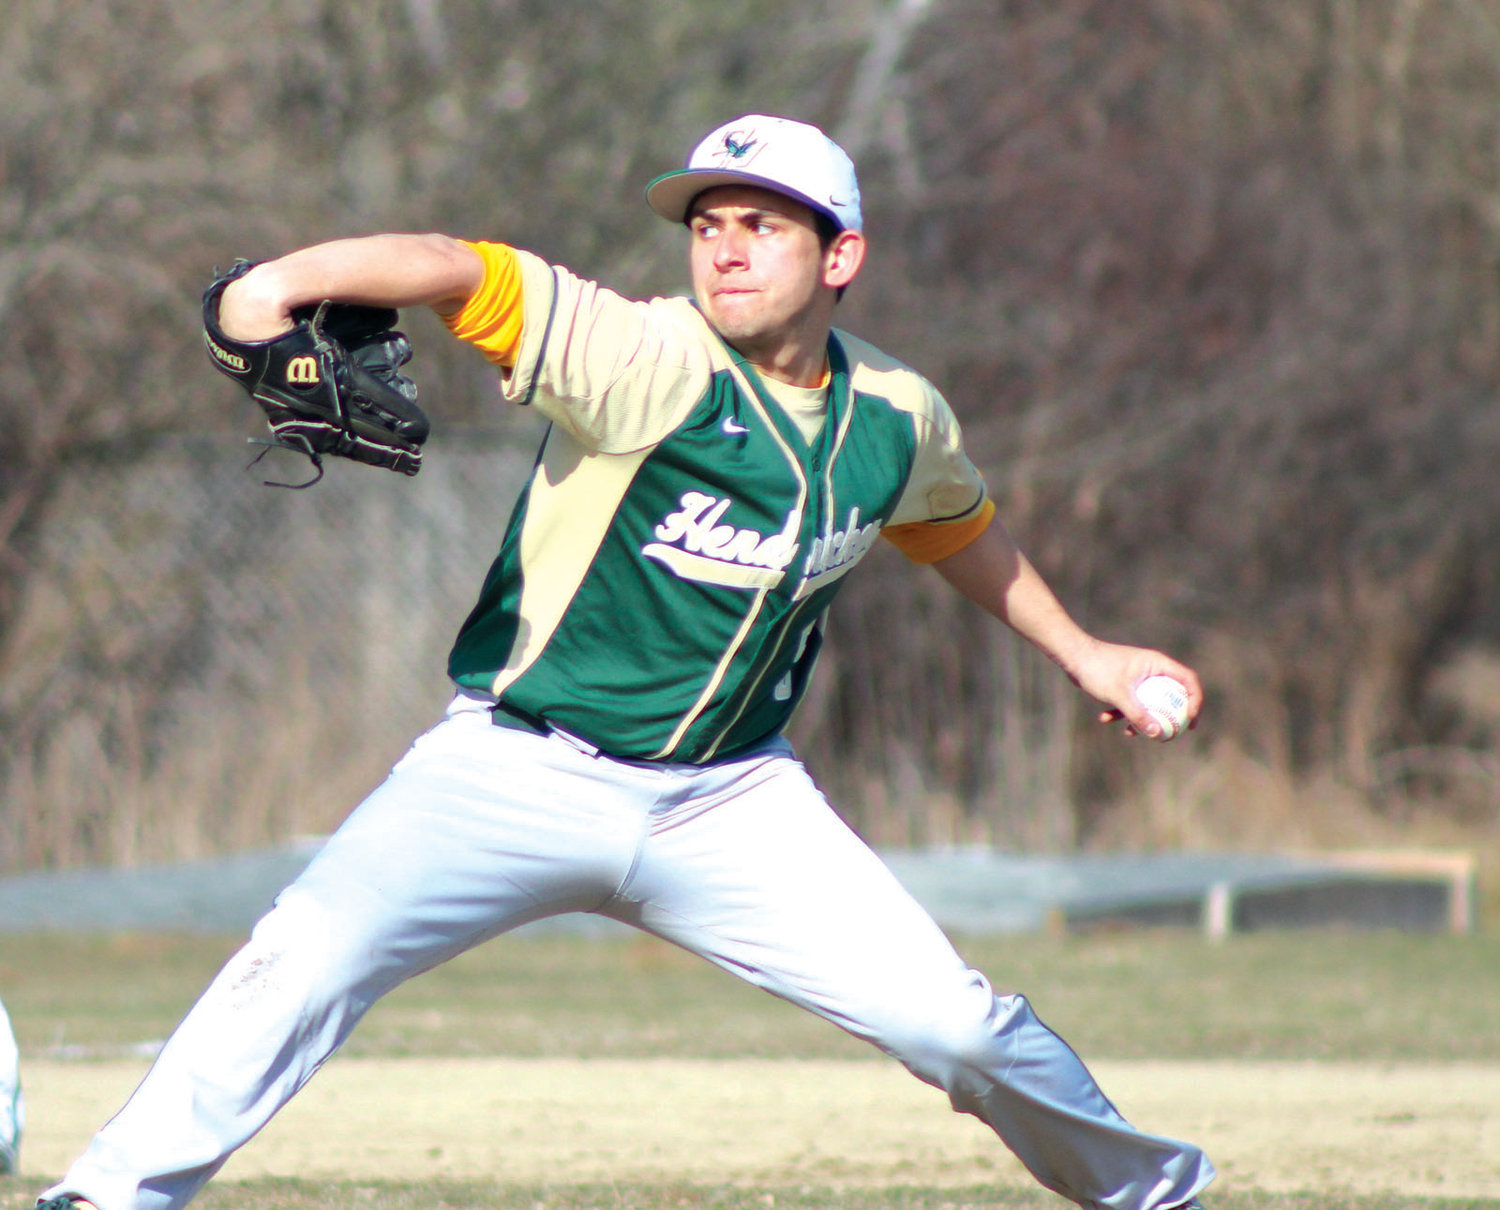 ON THE HILL: Bishop Hendricken's Kyle Marrapese gets set to deliver.